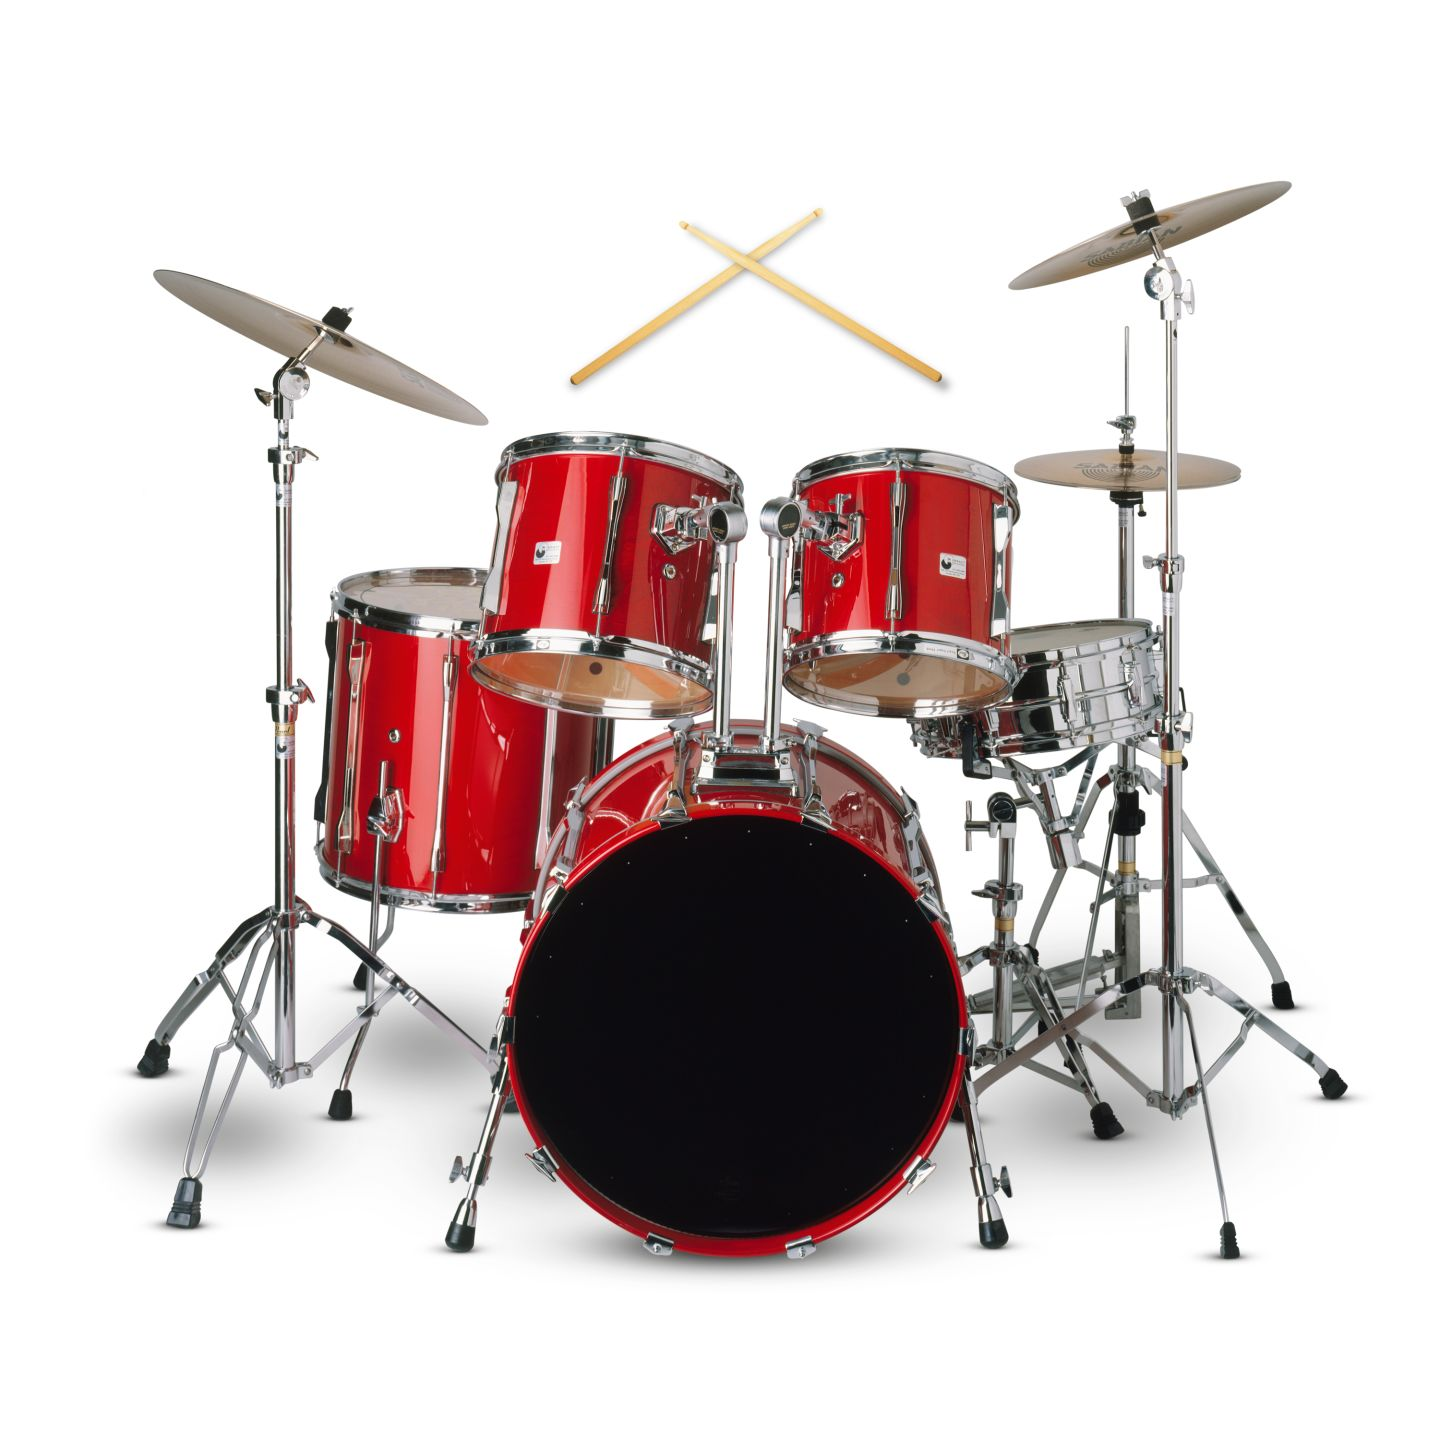 Types Of Drums | Facts About Drums | DK Find Out